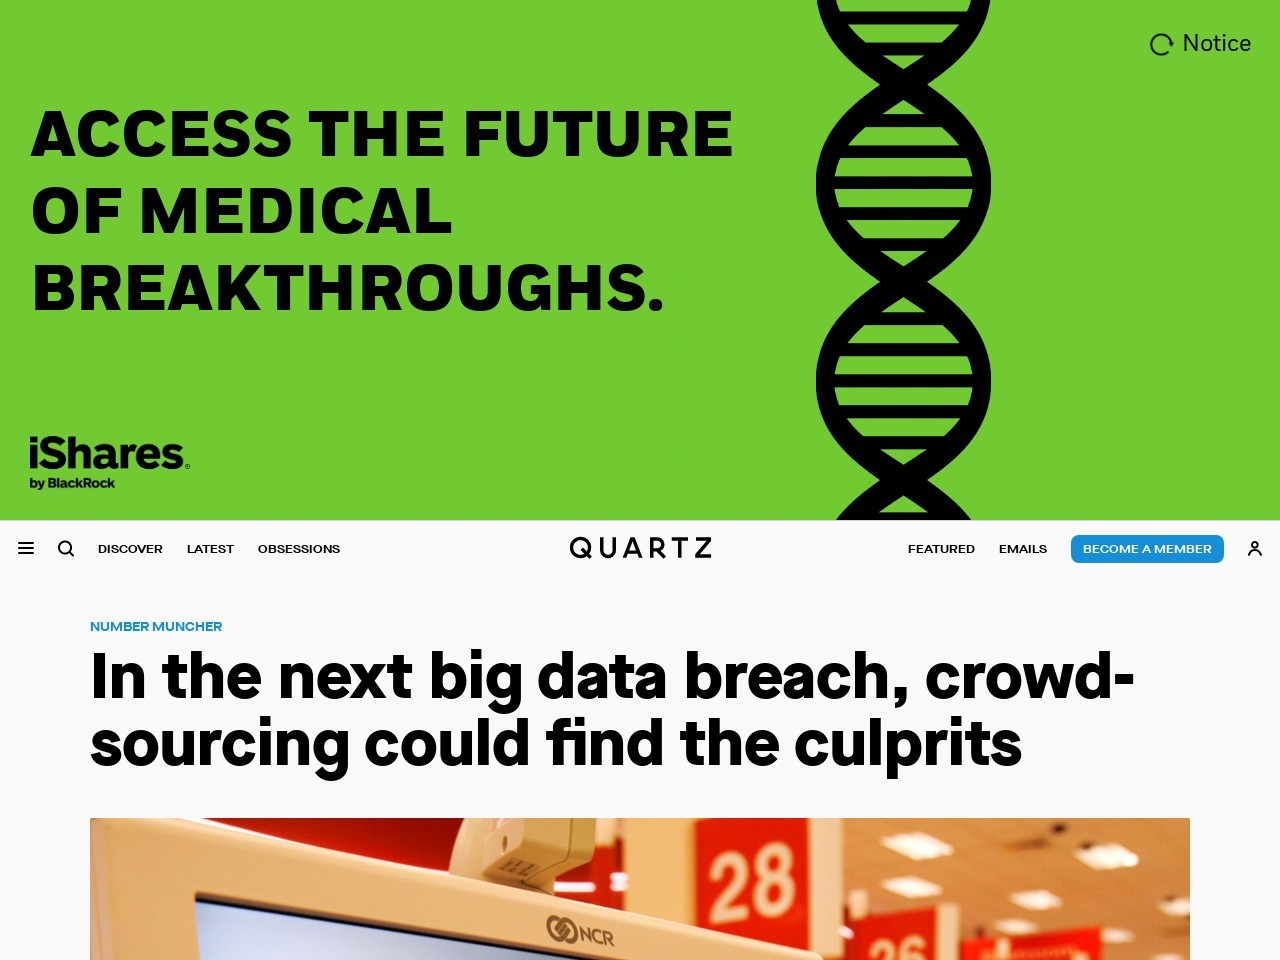 In the next big data breach, crowd-sourcing could find the culprits